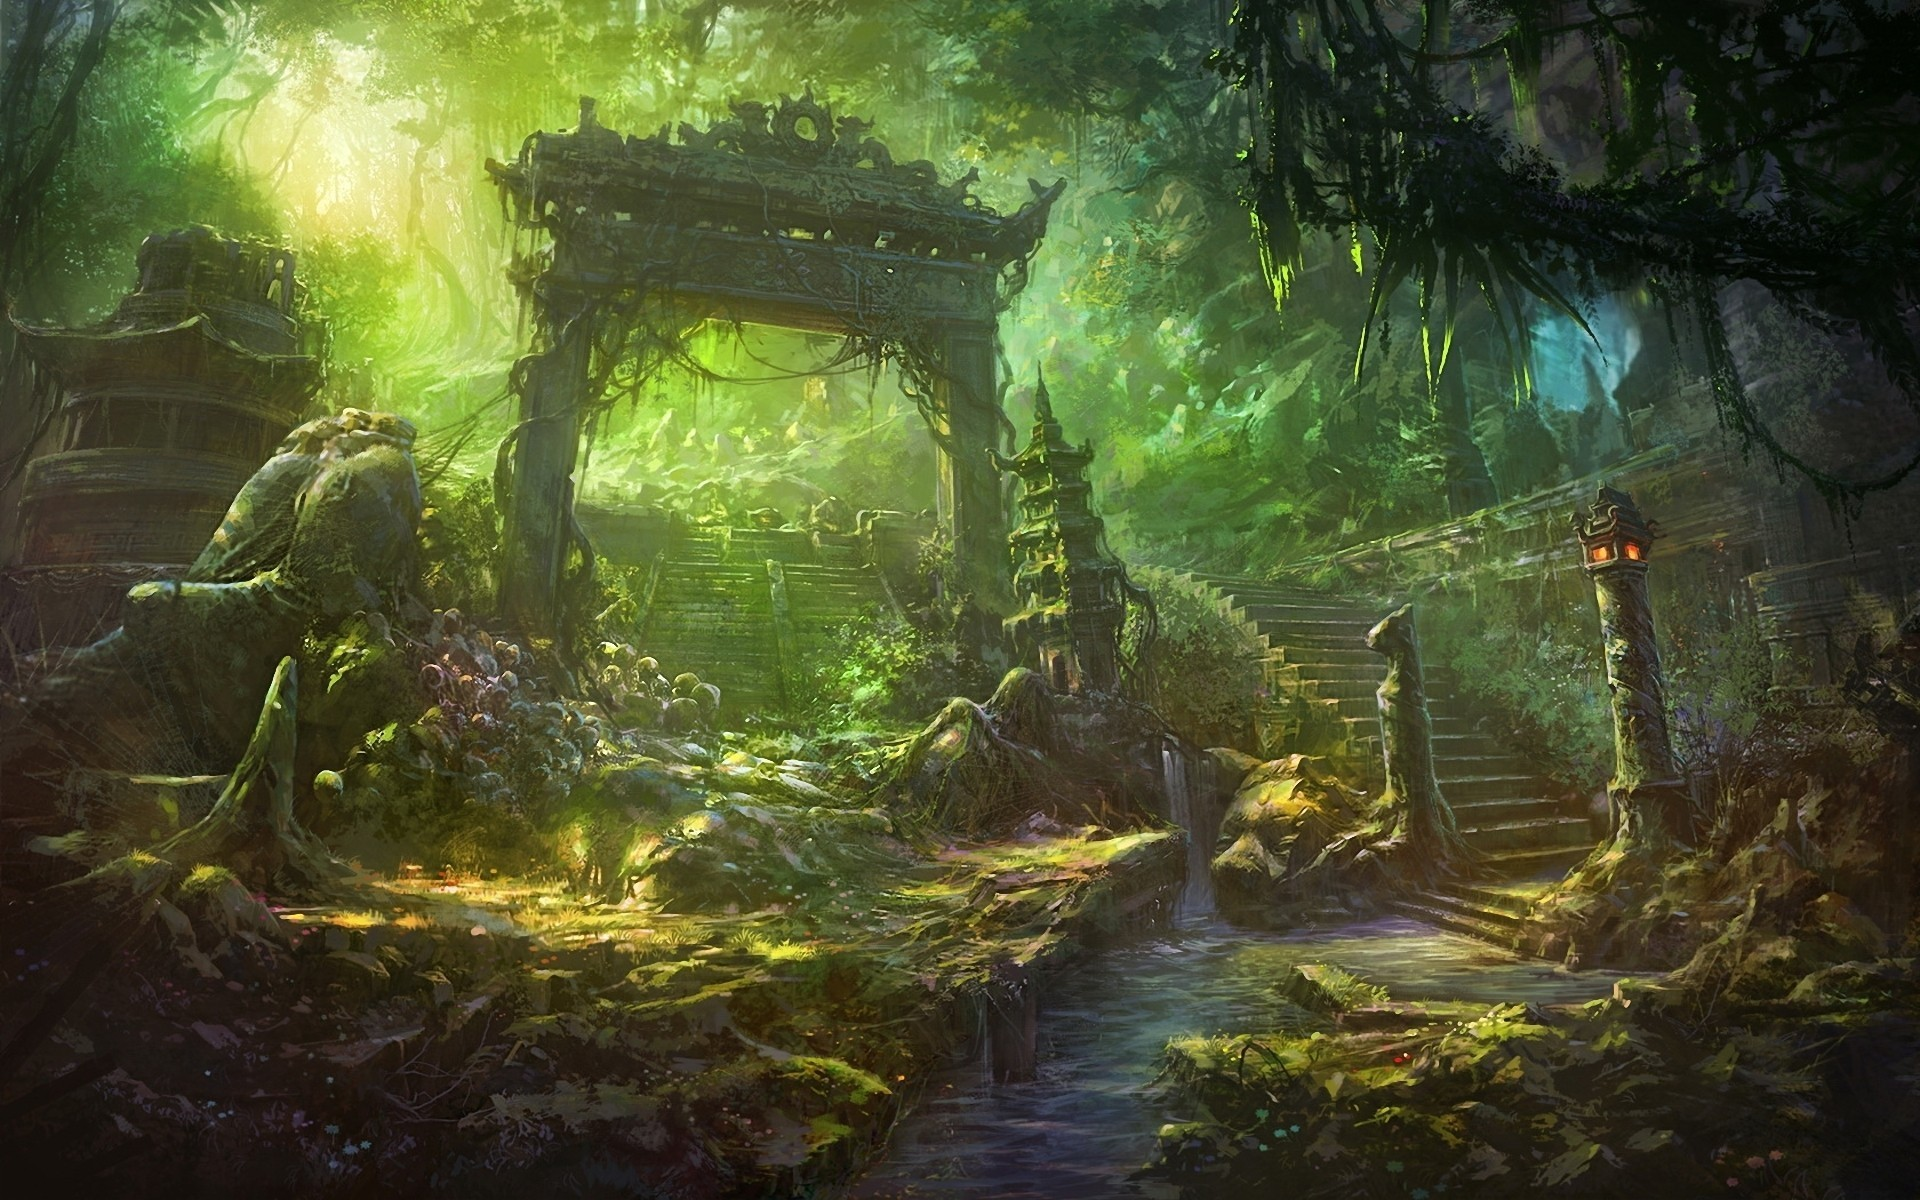 1920x1200 Anime Fantasy Forest Landscape Wallpapers